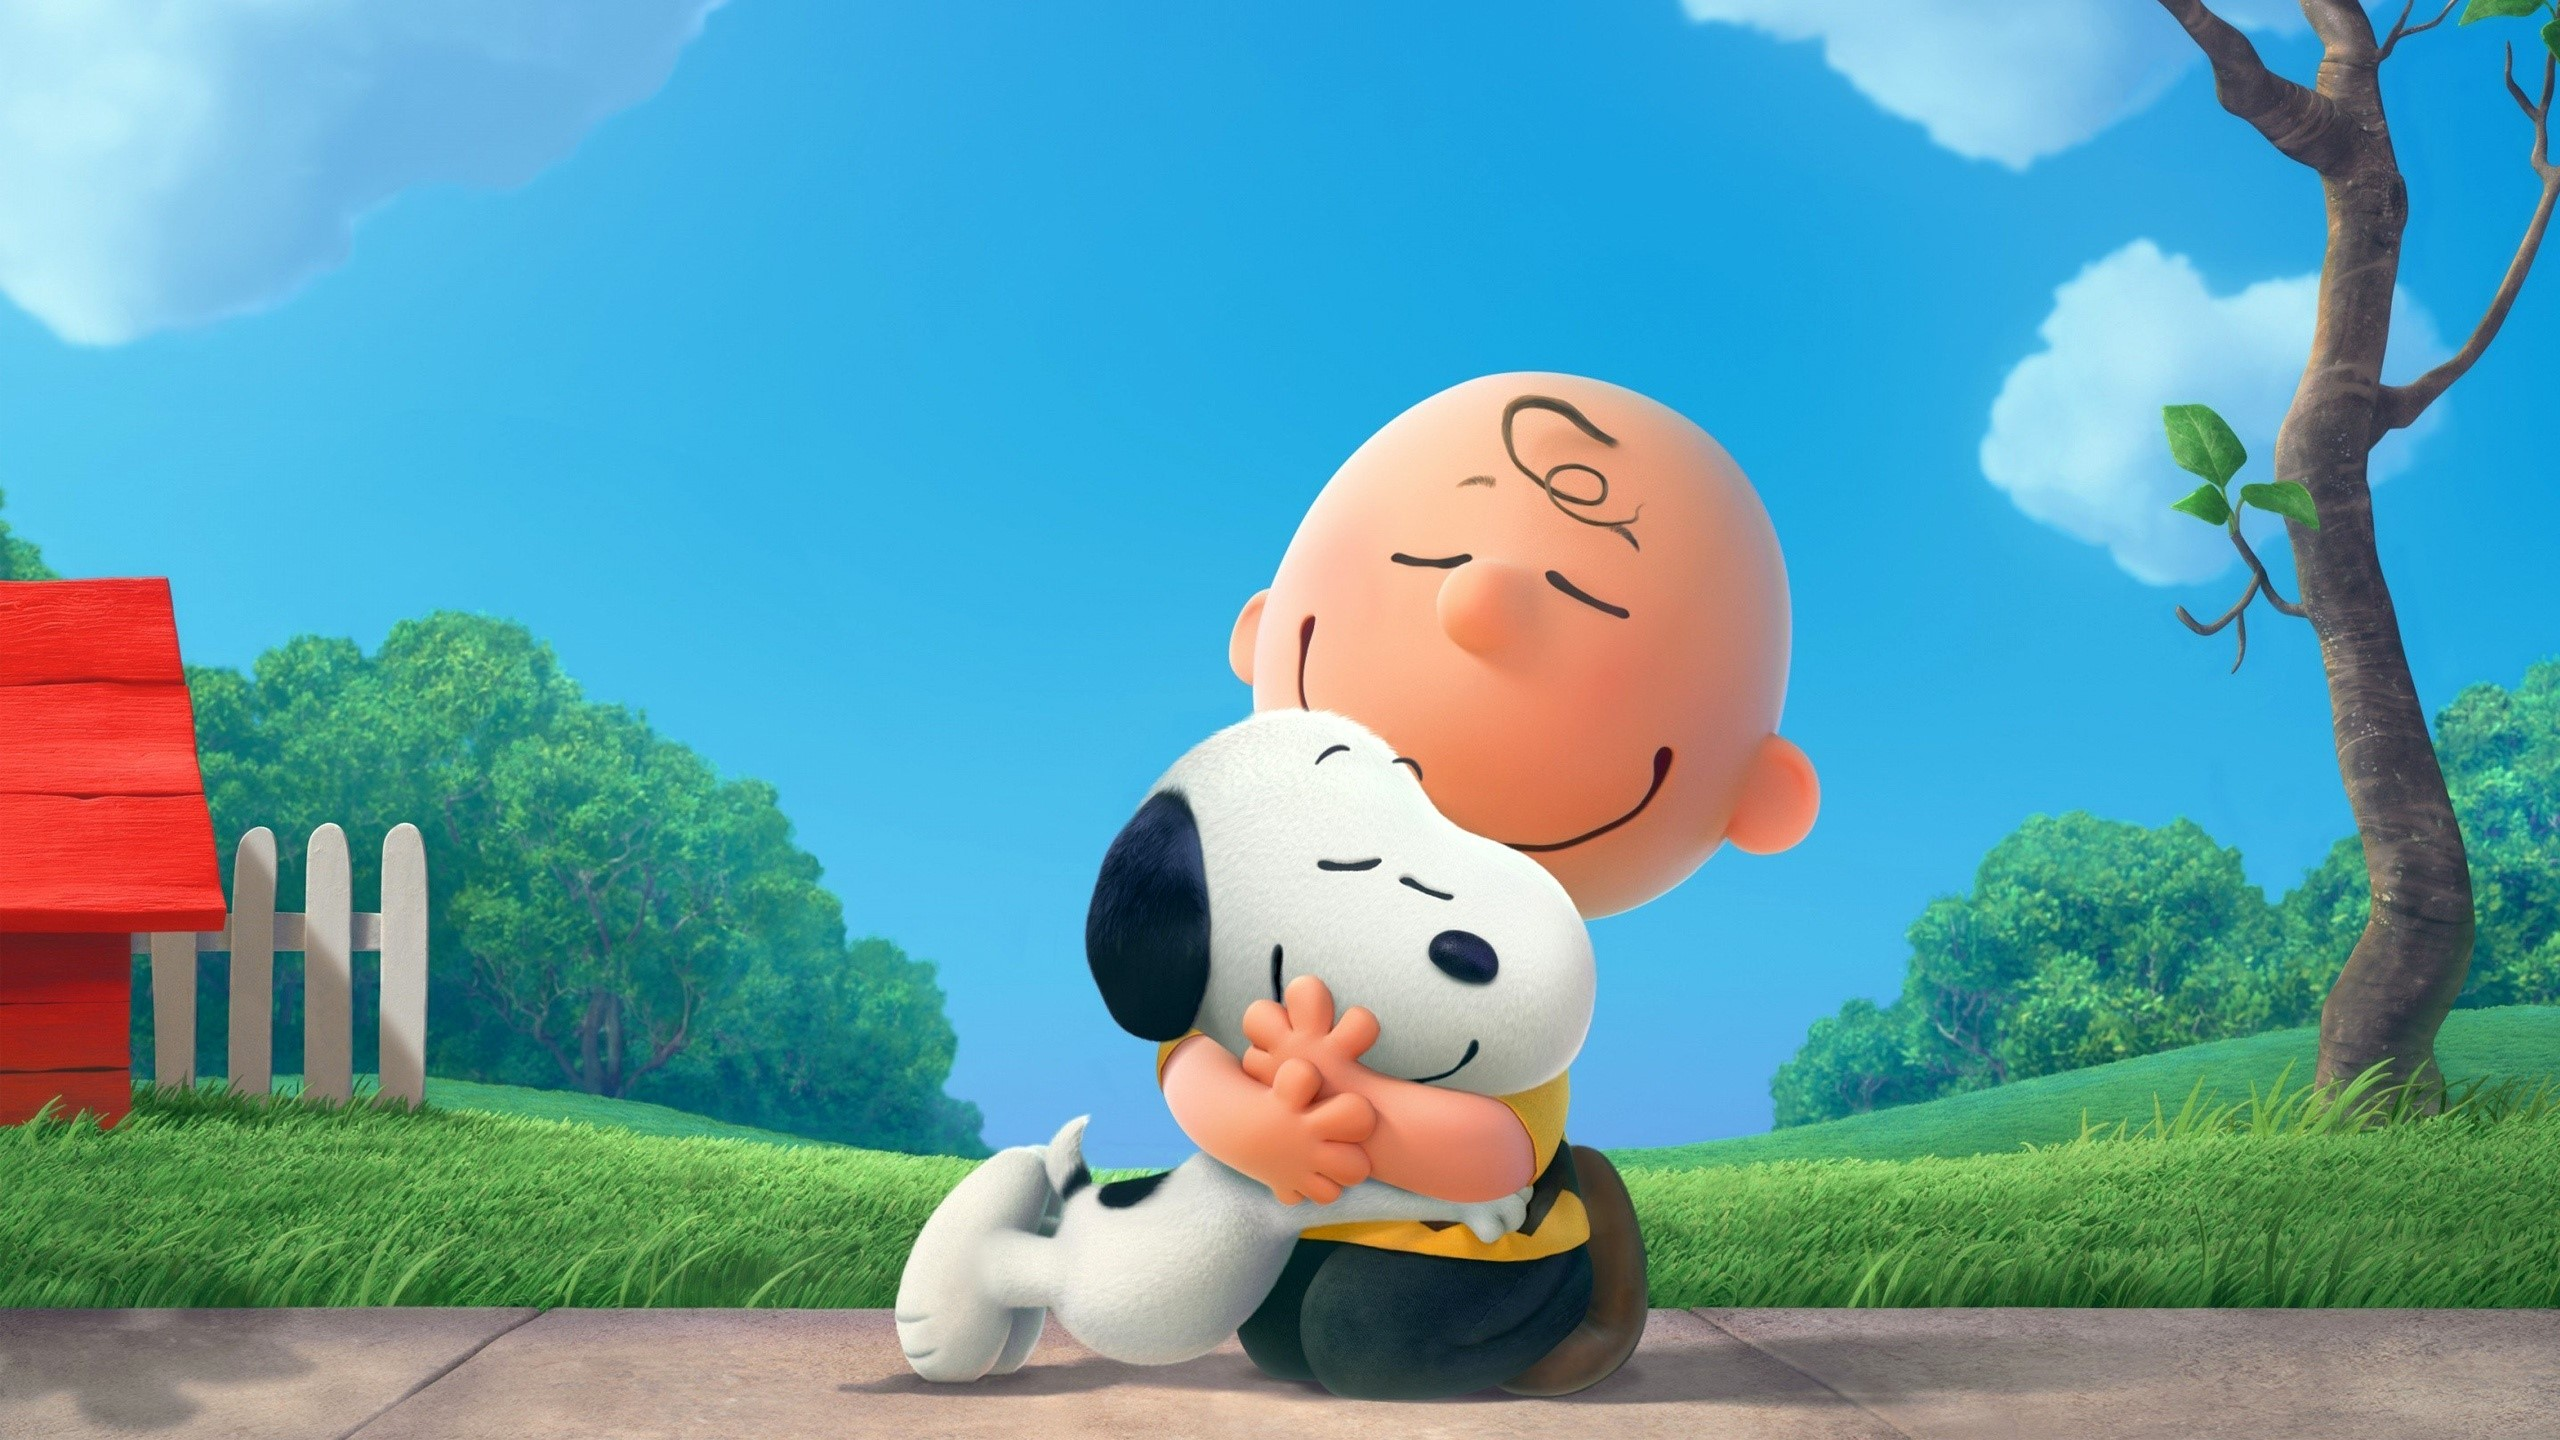 Charlie Brown And Snoopy Wallpaper 2k Quad Hd Id2273